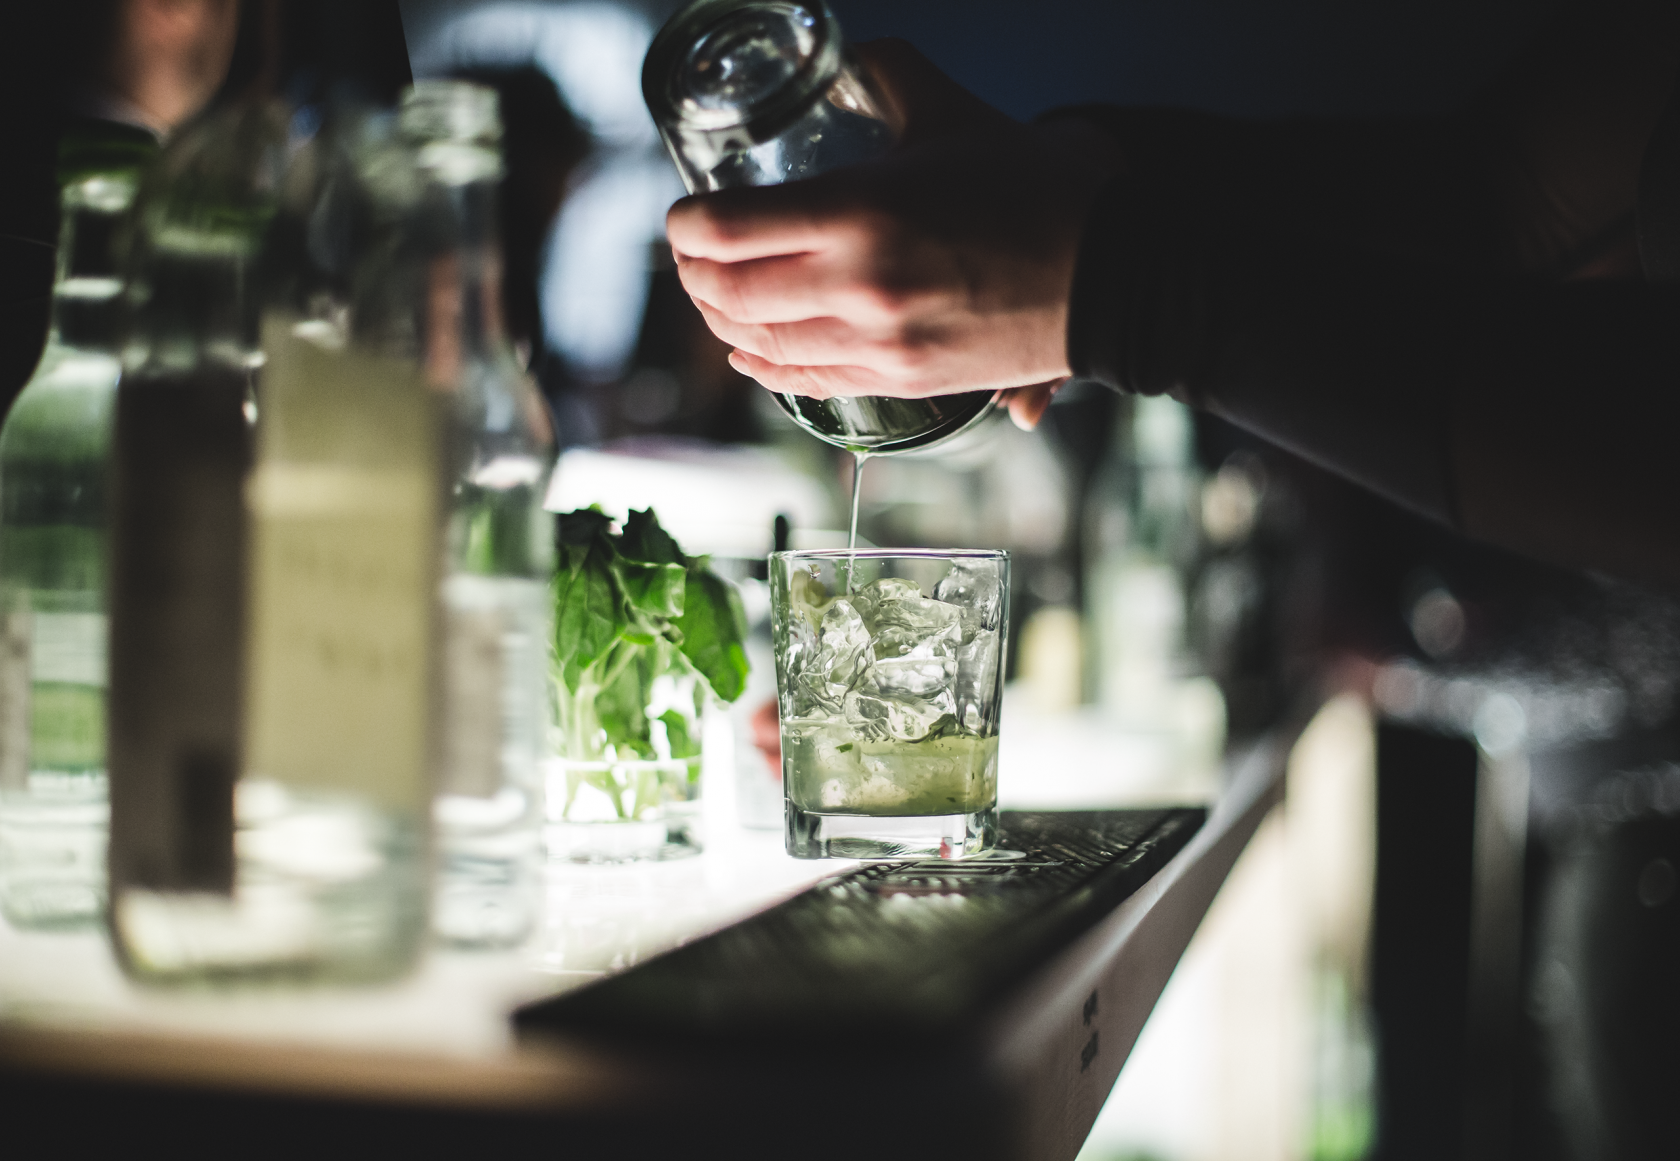 Bartender making a ice cold alcoholic beverage